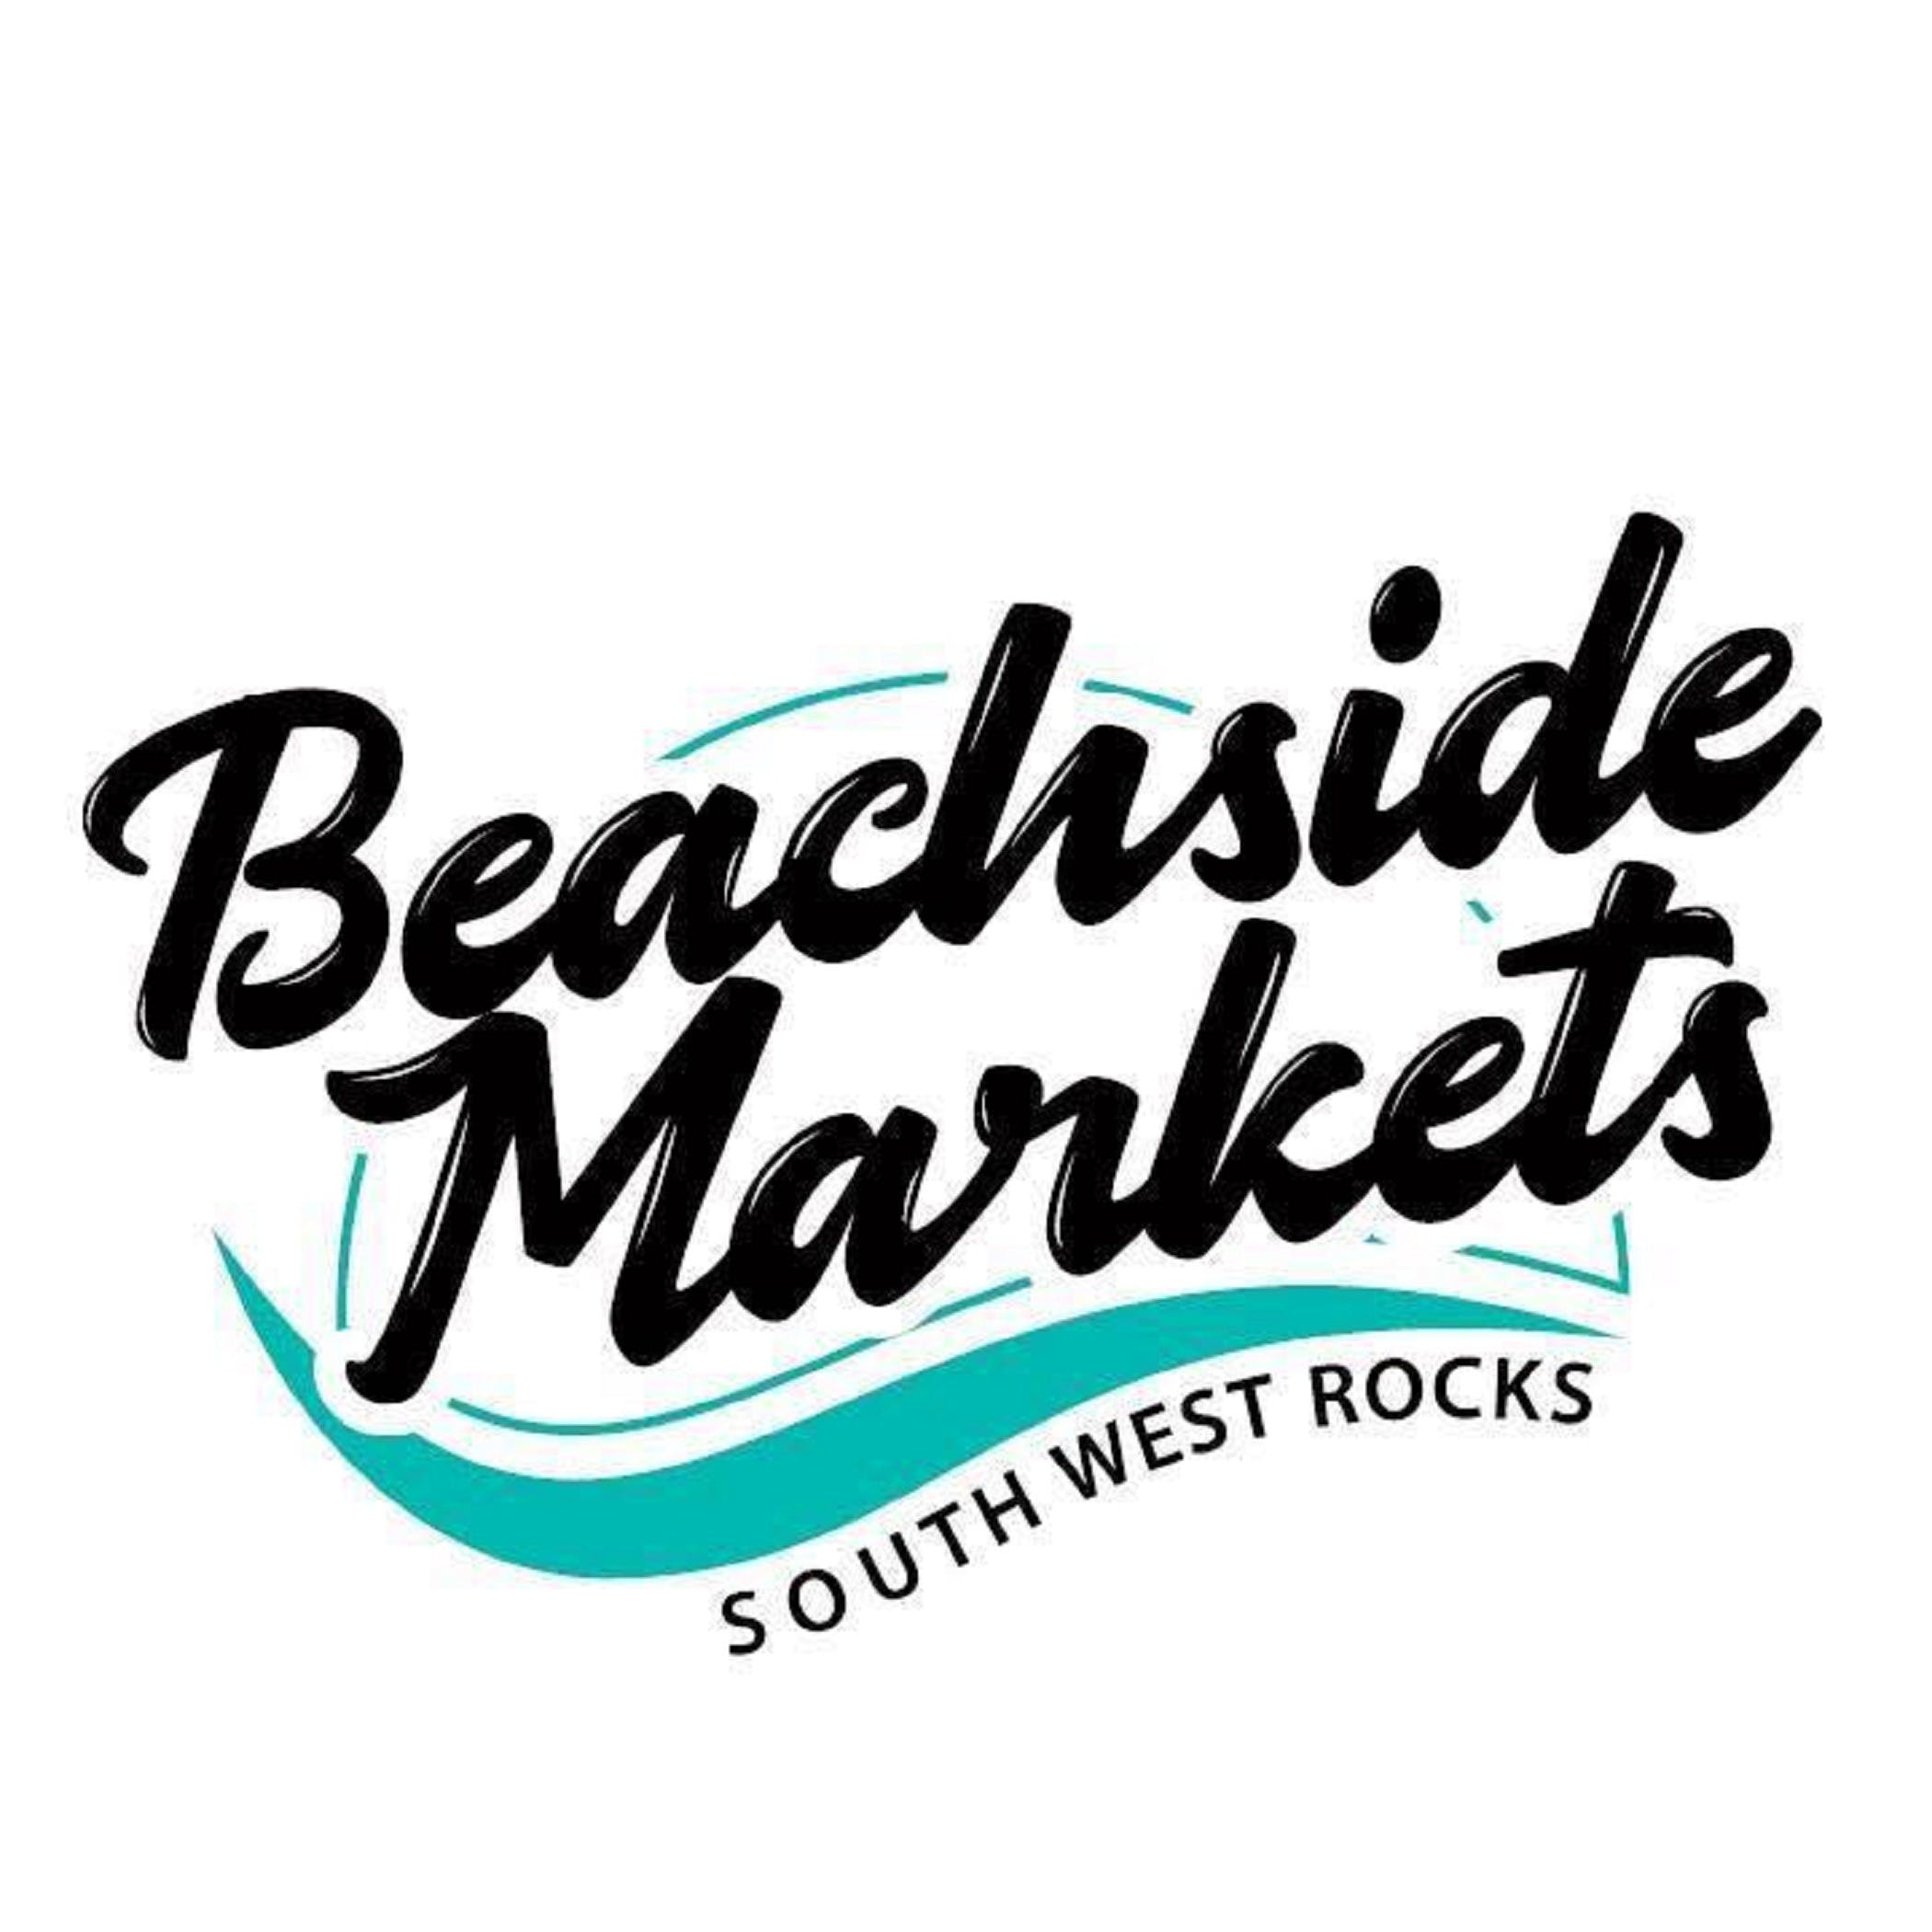 Beachside Markets South West Rocks - Accommodation Melbourne